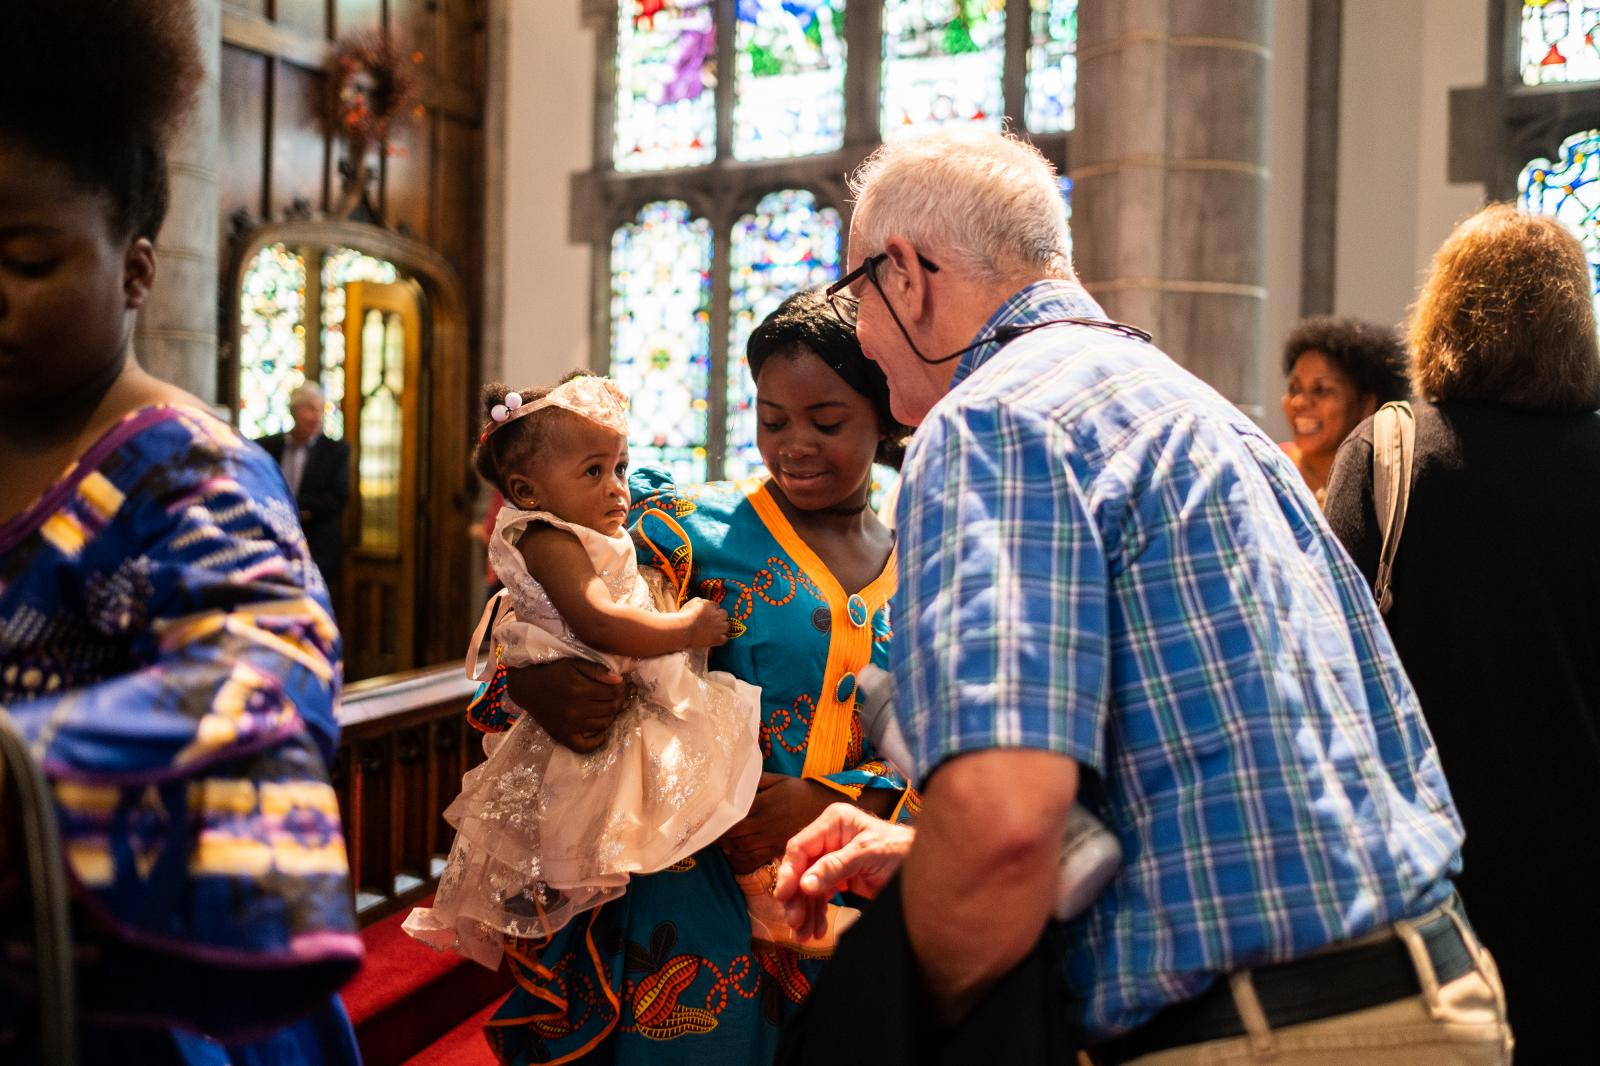 Faraha was baptized during the service this week and she is being greeted by other members of the church.